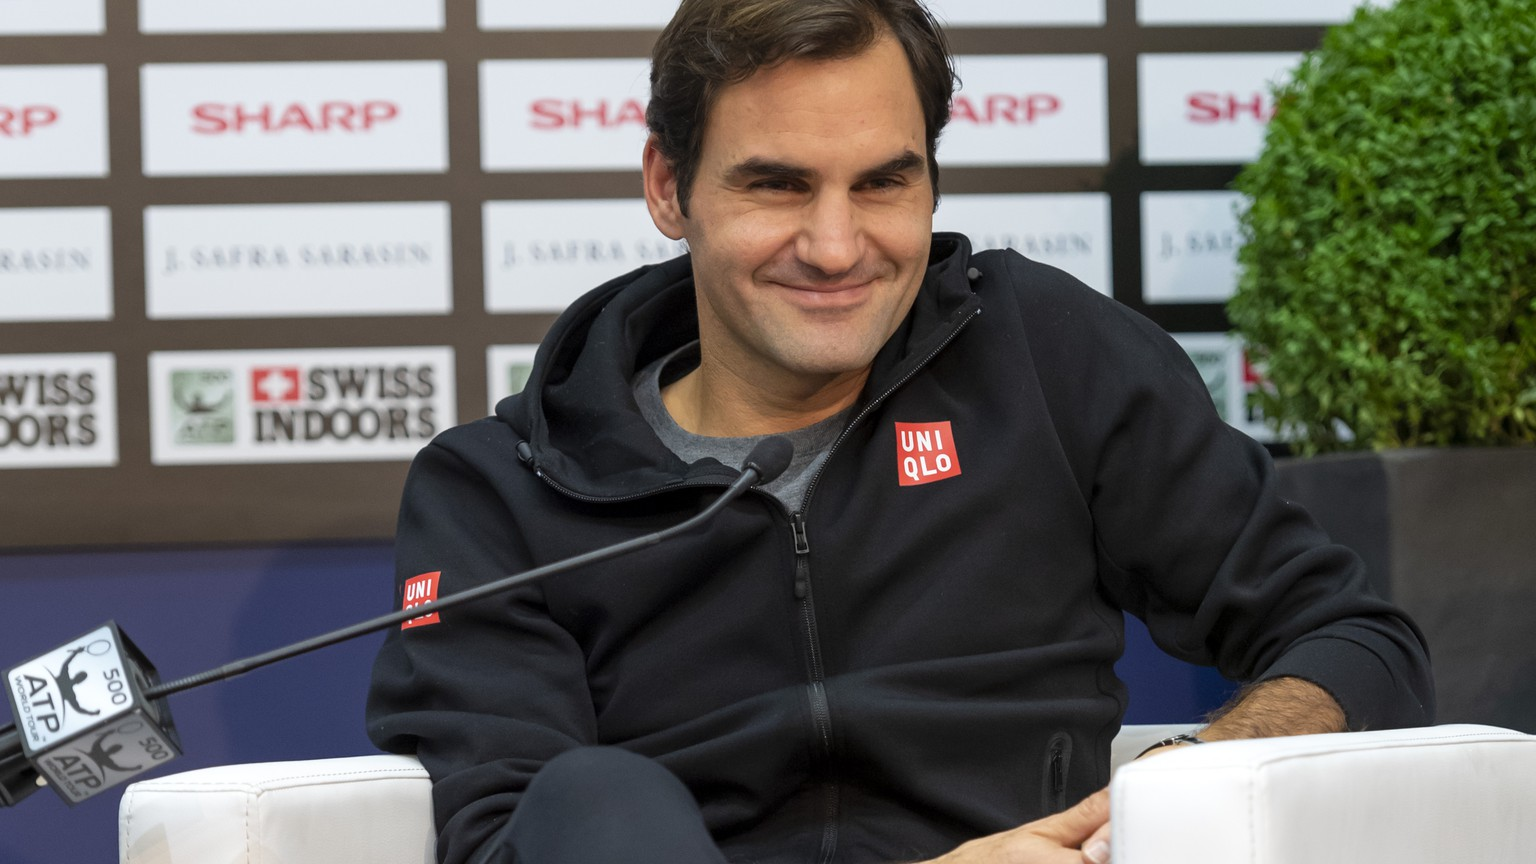 Switzerland's Roger Federer smiles during a press conference at the Swiss Indoors tennis tournament at the St. Jakobshalle in Basel, Switzerland, on Sunday, October 21, 2018. (KEYSTONE/Georgios Kefalas)